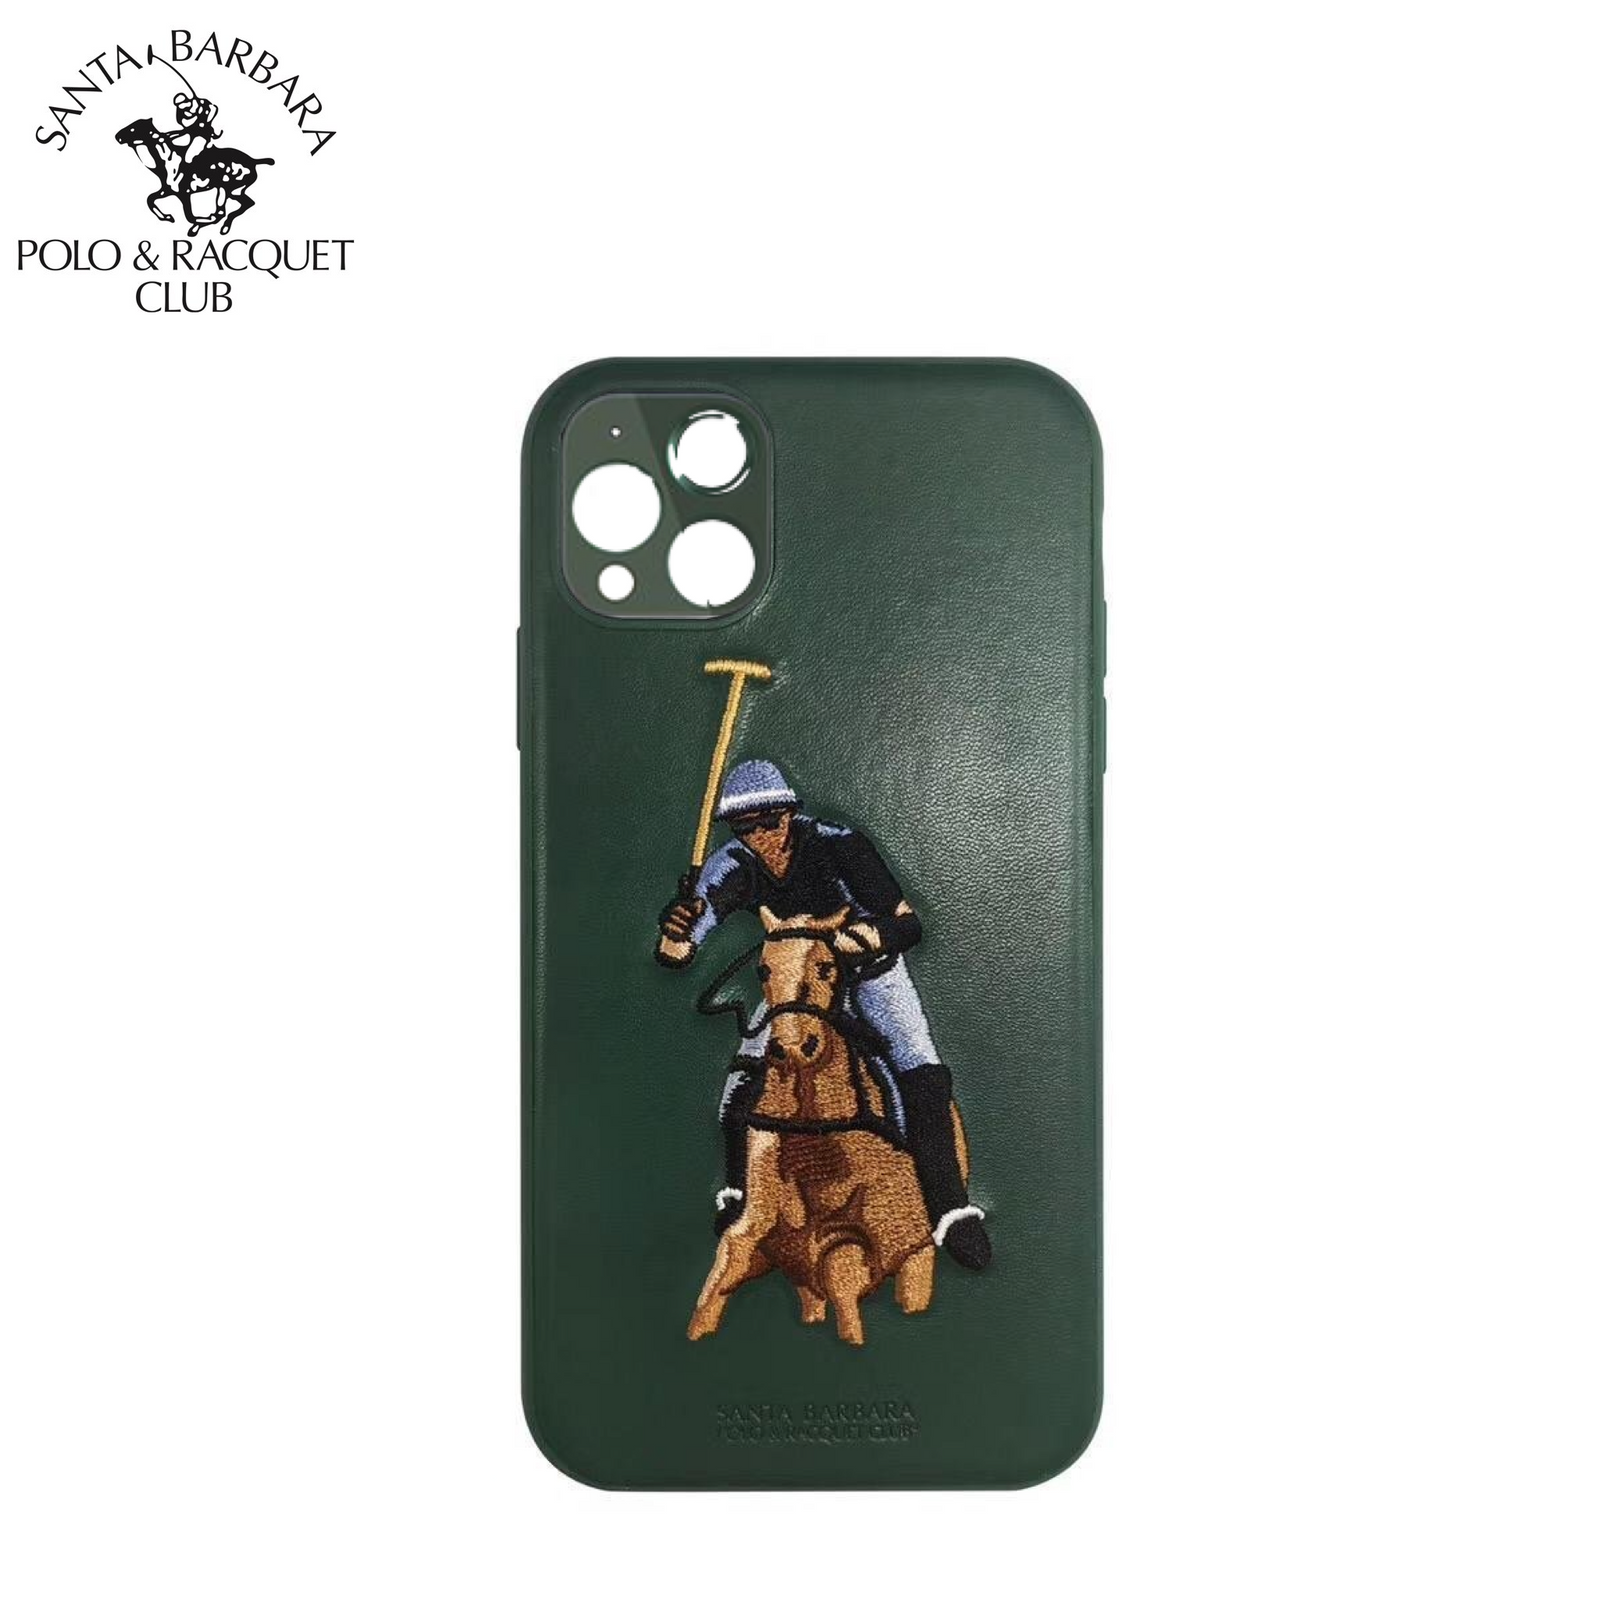 Santa Barbara Polo & Racquet Club Jockey Series Genuine Leather Case Cover for Apple iPhone 11 6.1""